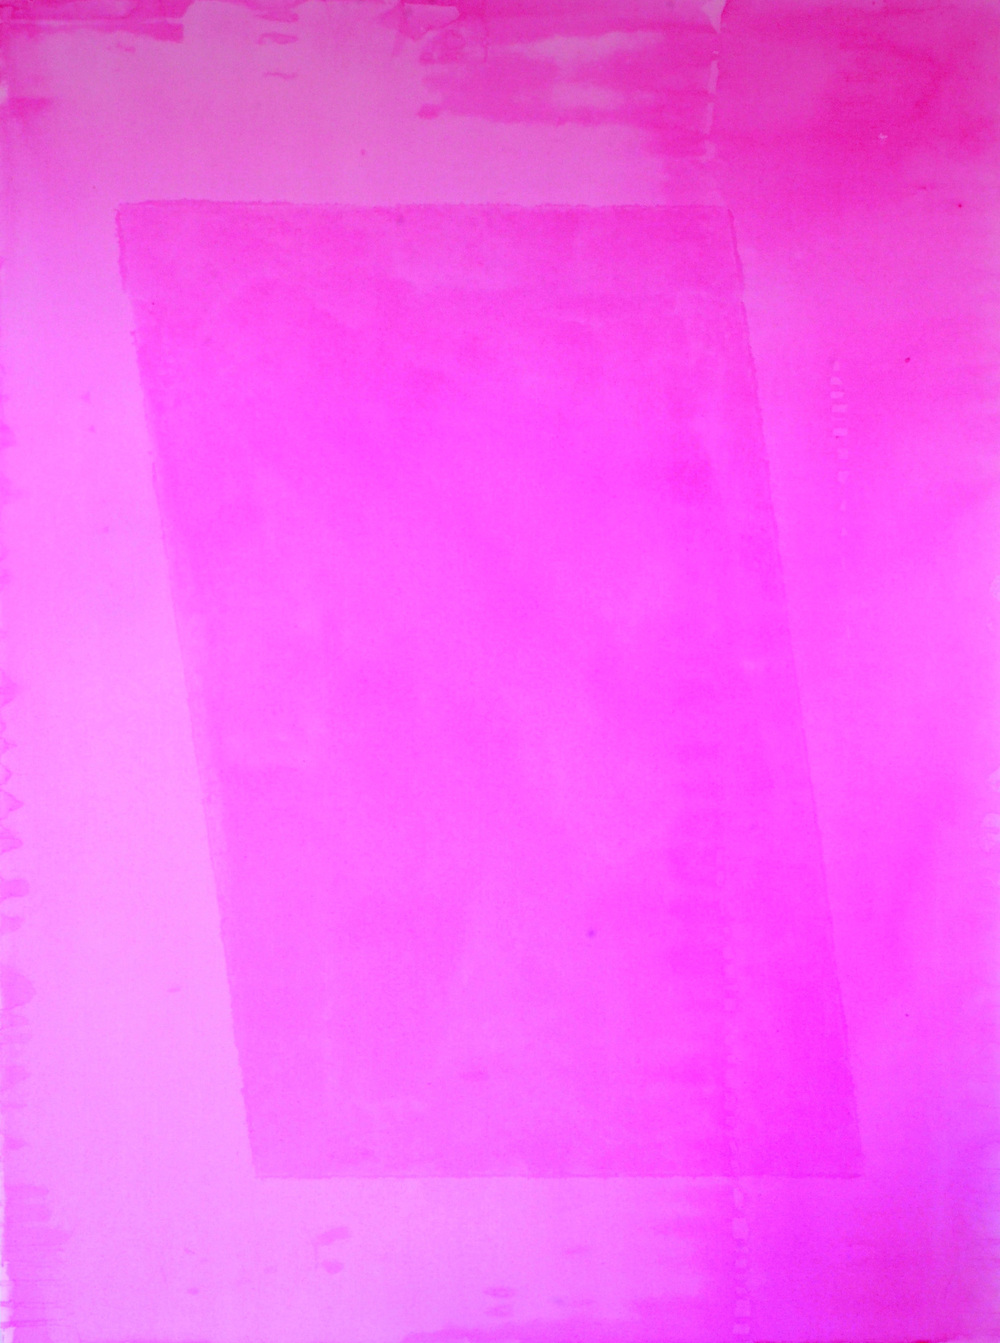 Sam Fryer, Pink Paraellelogram, 2014 Acrylic on Canvas, 20 x 40 in.jpg